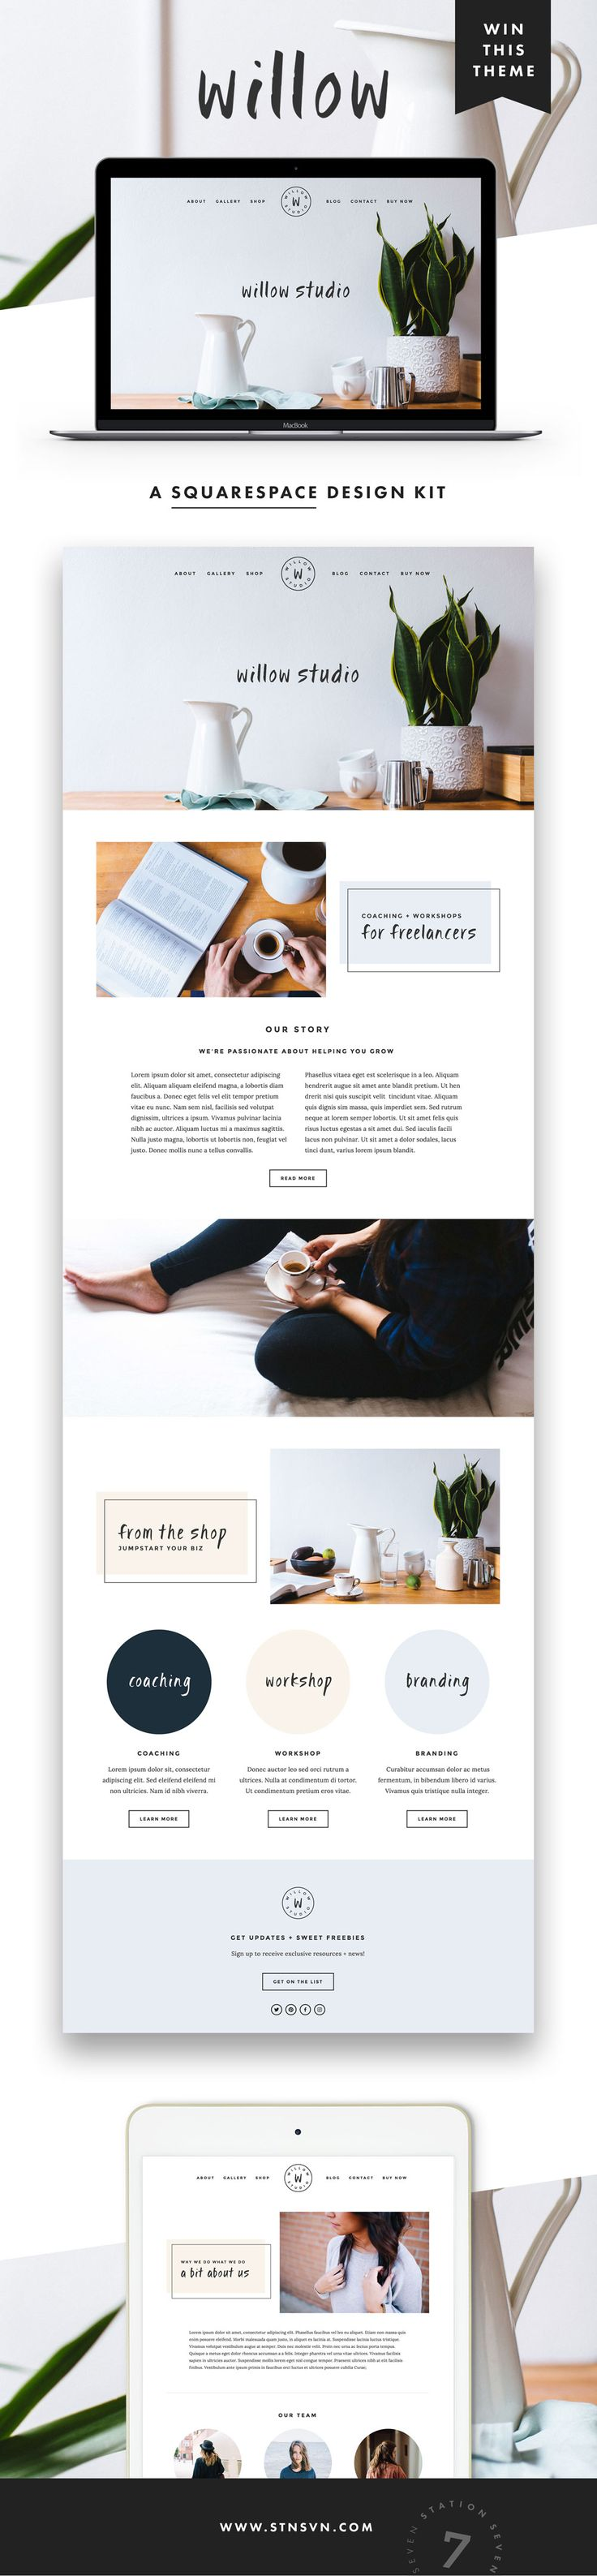 GIVEAWAY! Introducing our latest web design for Squarespace, Willow! If you've been thinking about sprucing up your blog or web design, there's no time like the present. Simply follow us @Station Seven | Blogging, Web Design, + Entrepreneur Tips and repin